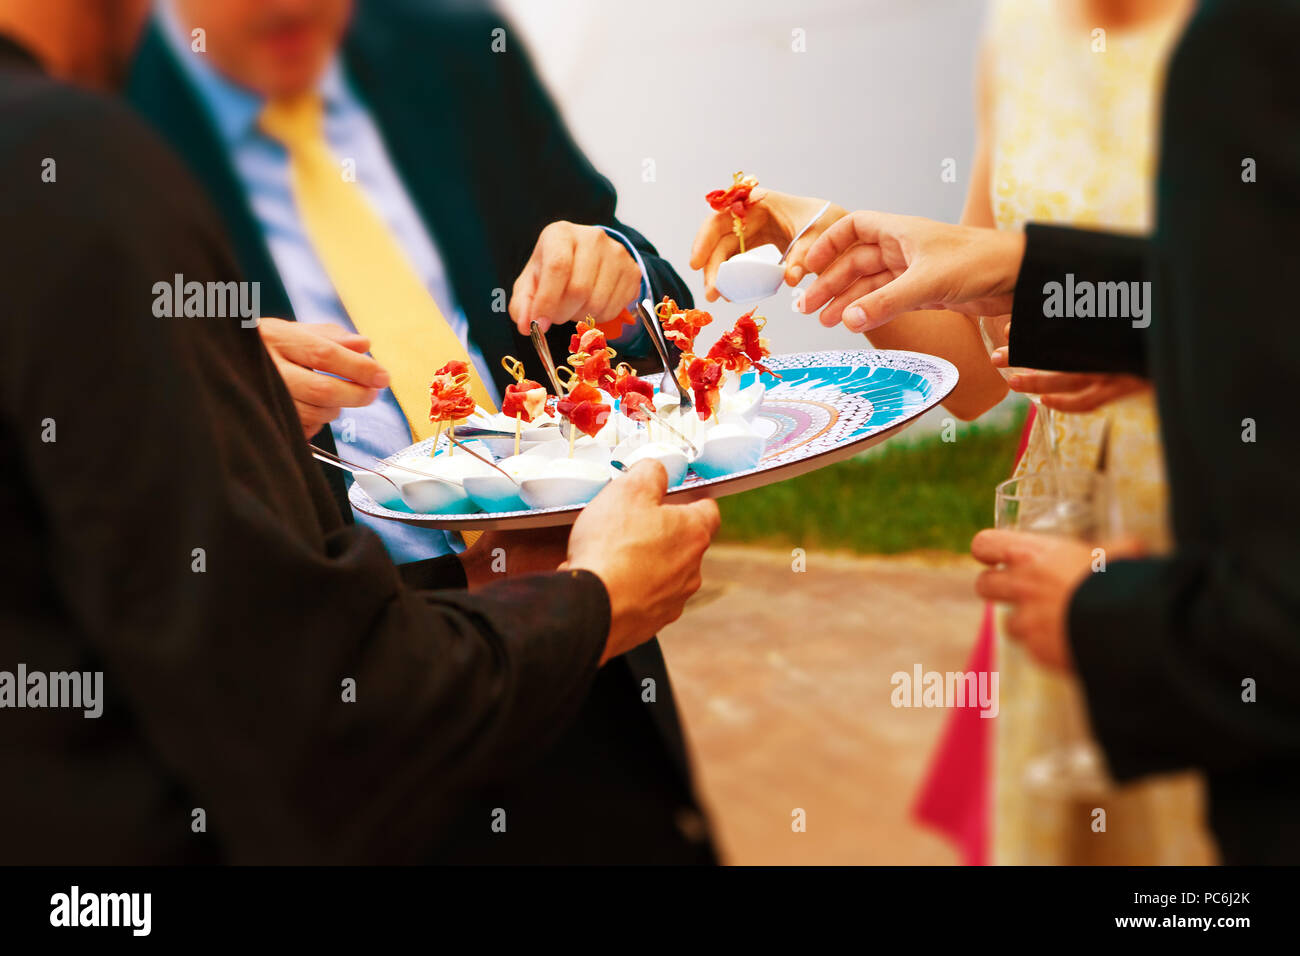 Food and catering. Wedding celebration and banquet. Wedding guests eating an appetizer - Stock Image